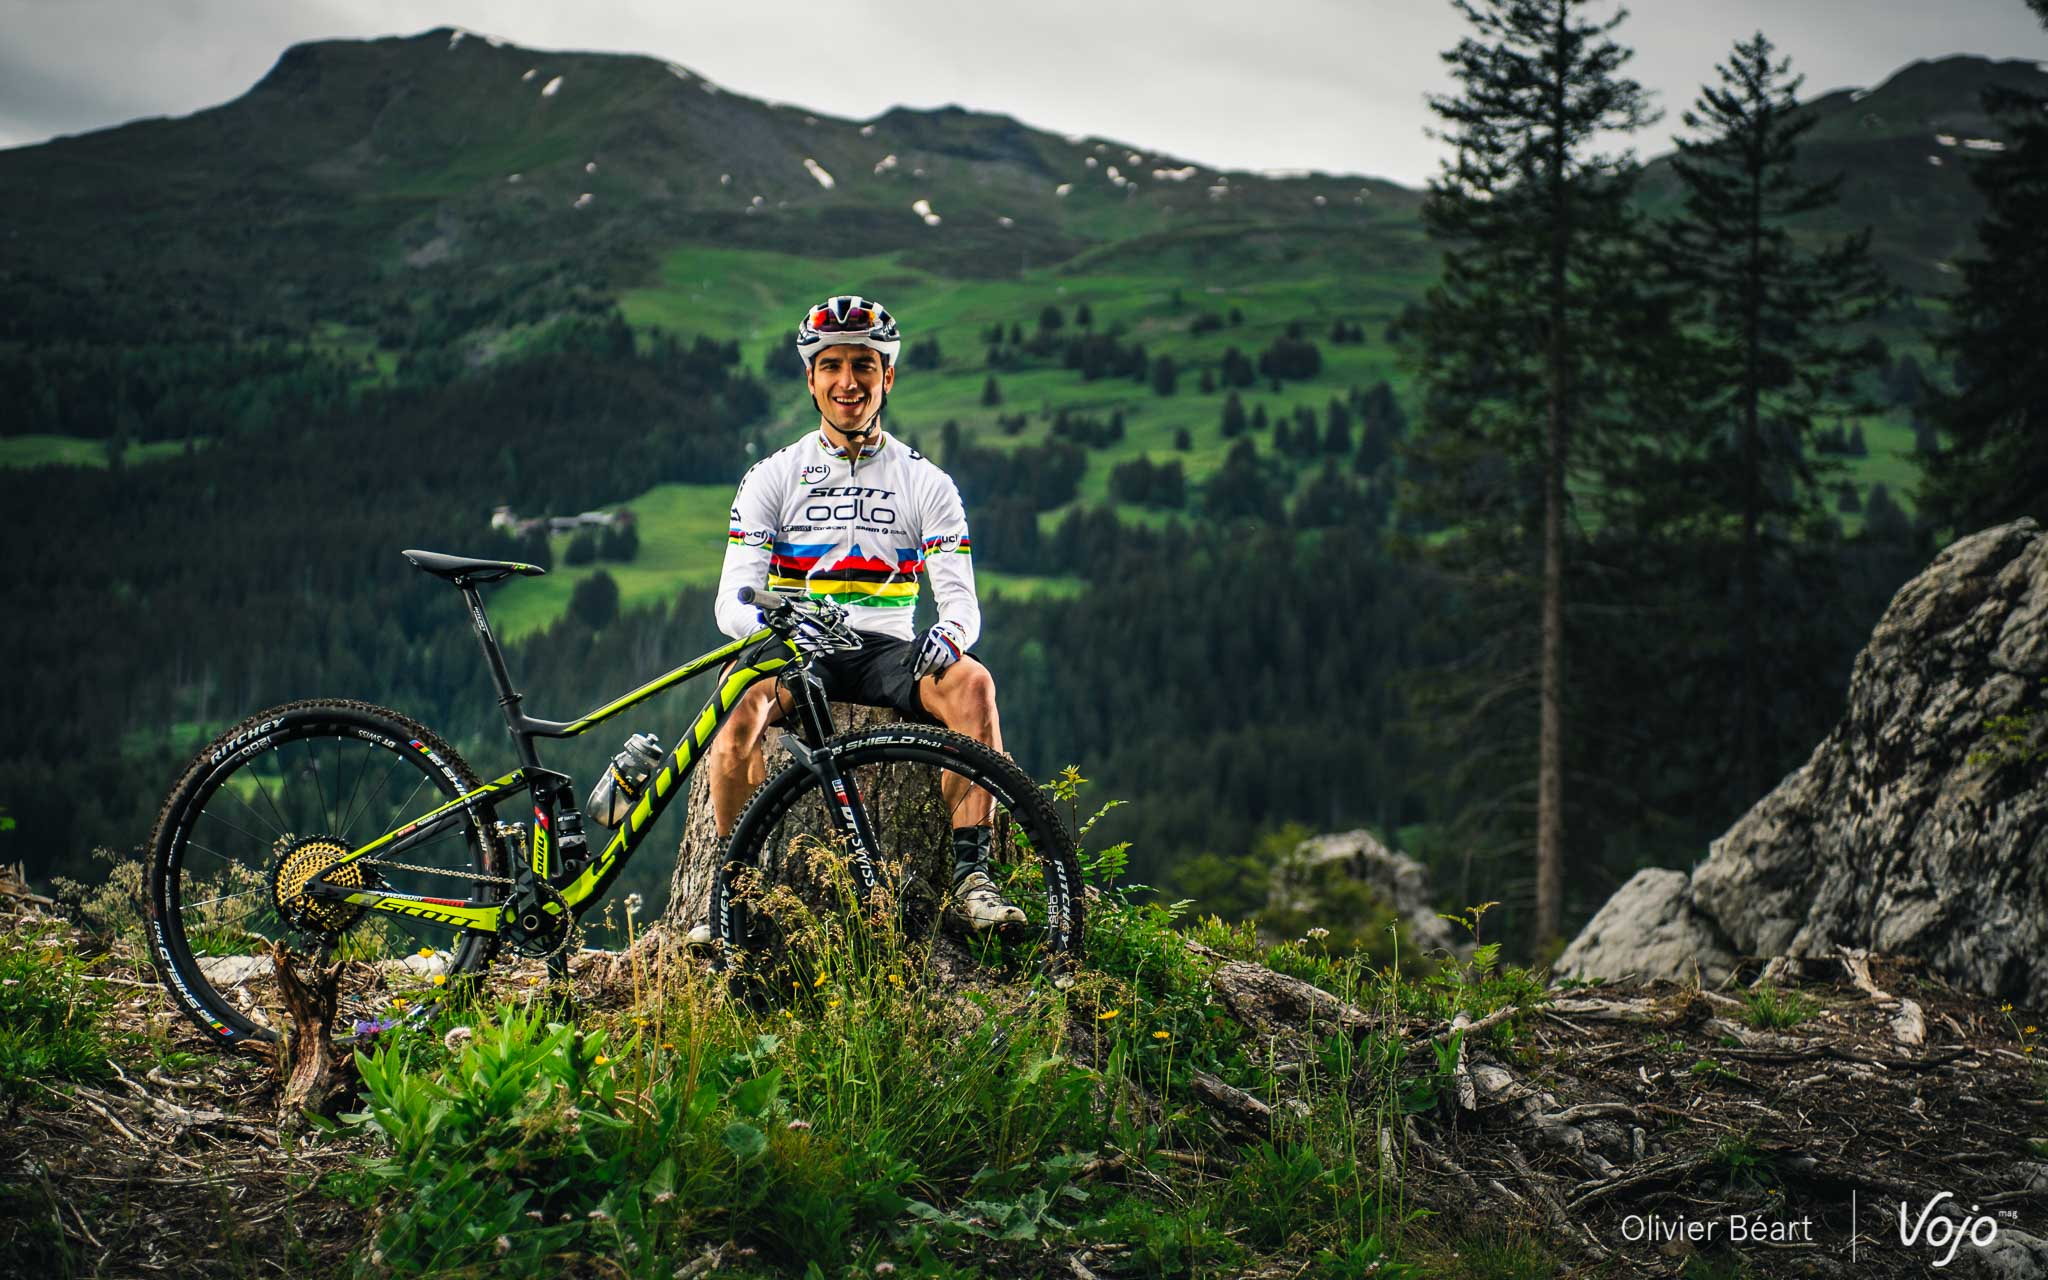 Nino_Schurter_Interview_Scott_Spark_Scale_Copyright_OBeart_VojoMag-10